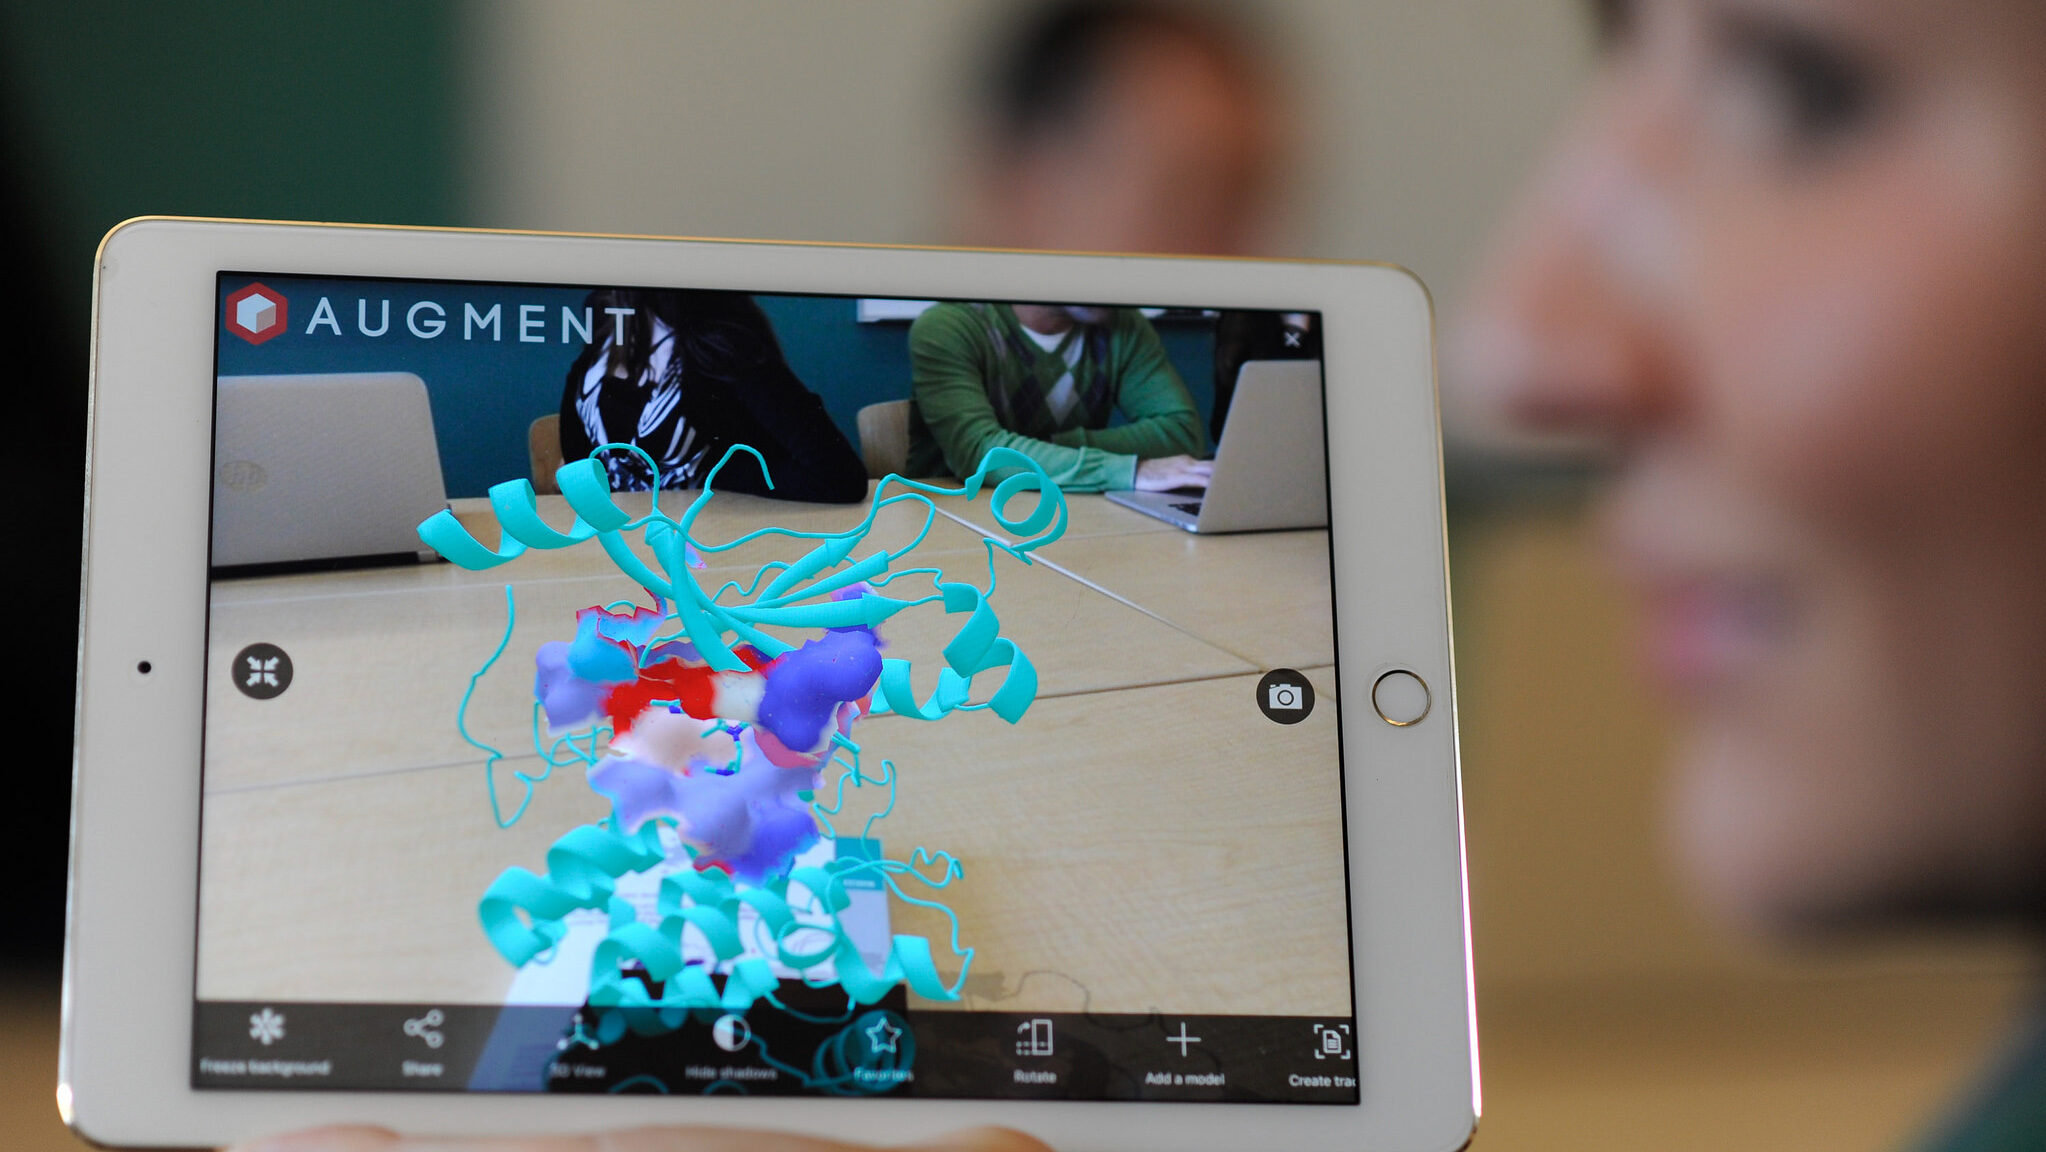 Bioinformatics student with augmented reality molecule on tablet